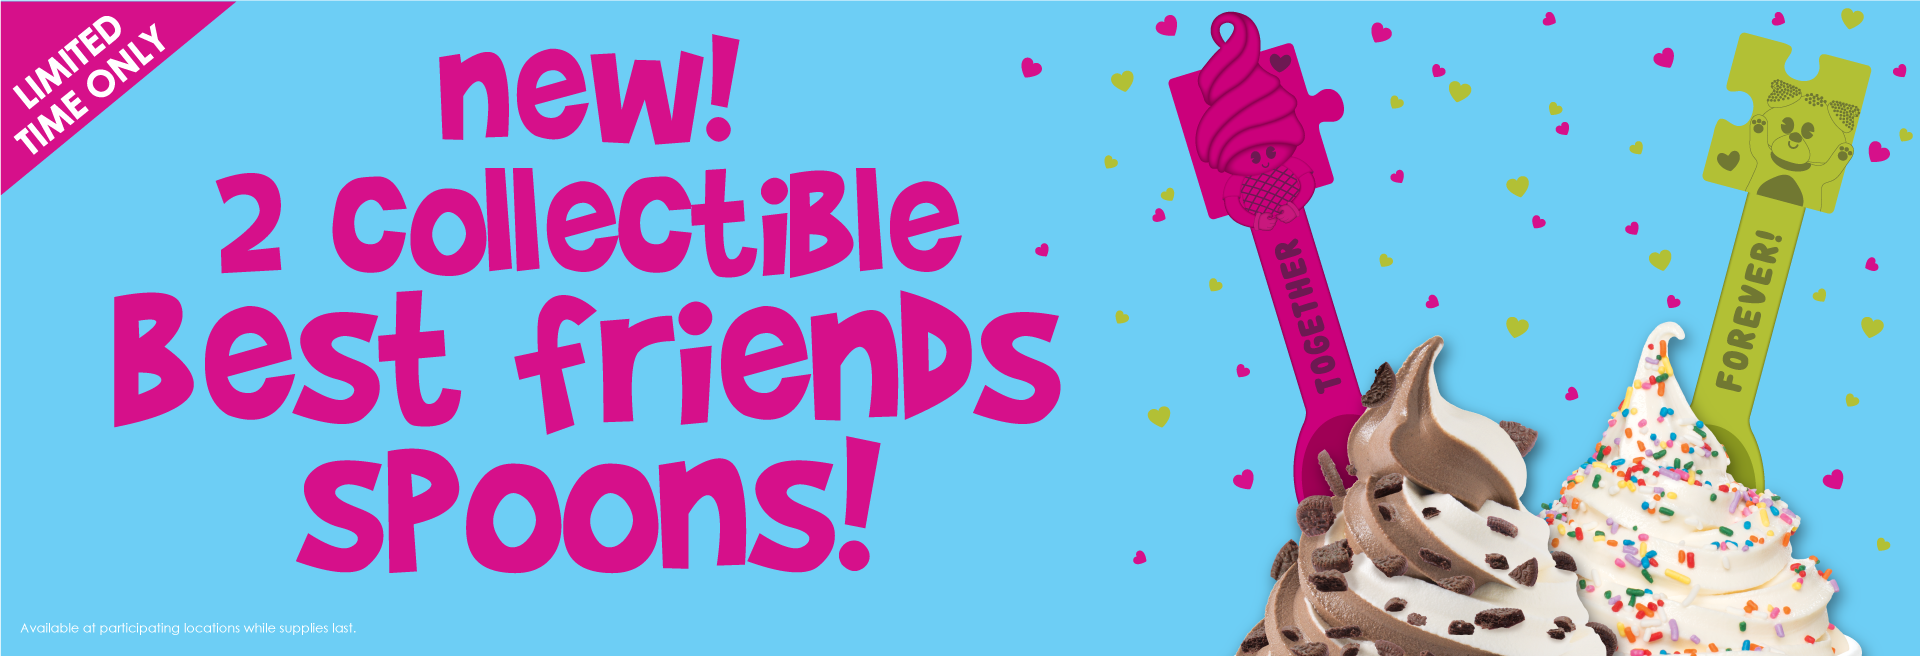 Create new bestie moments with our Best Friends spoons. They are the perfect fit. Get to Menchie's and start adding these spoons to your collection today!